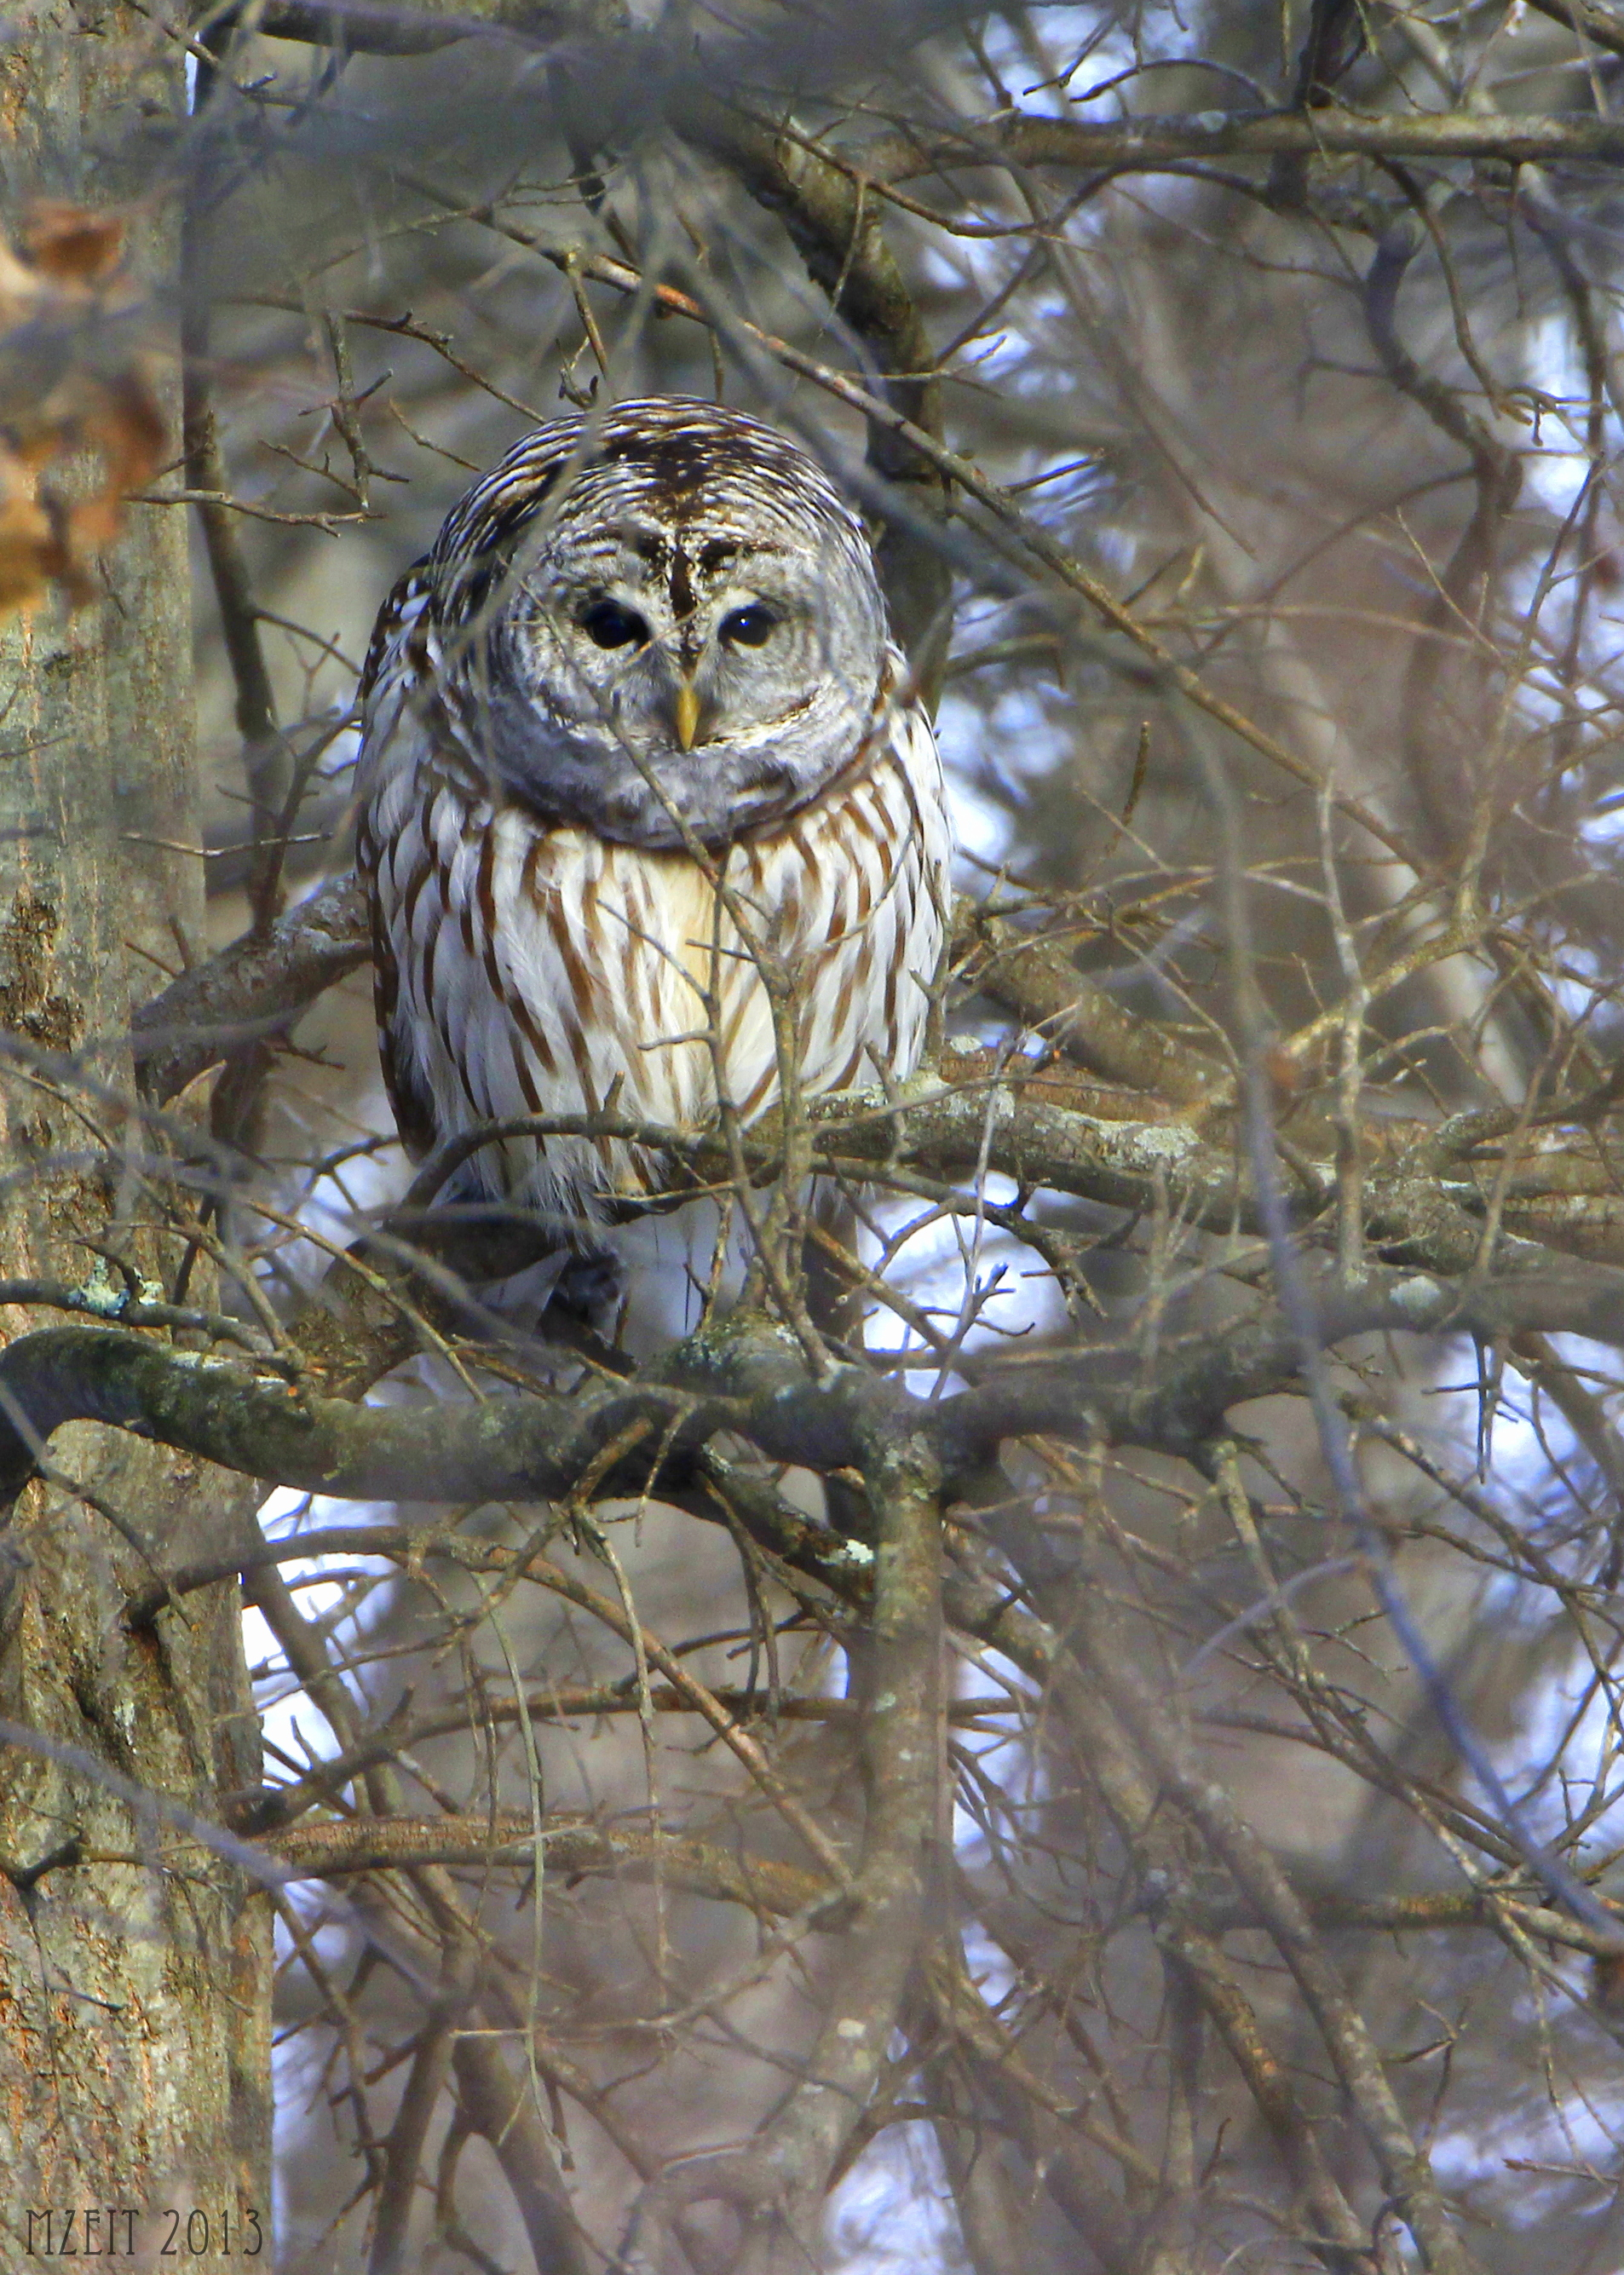 Barred Owl at the Great Swamp NWR in Basking Ridge NJ, 1-4-13.